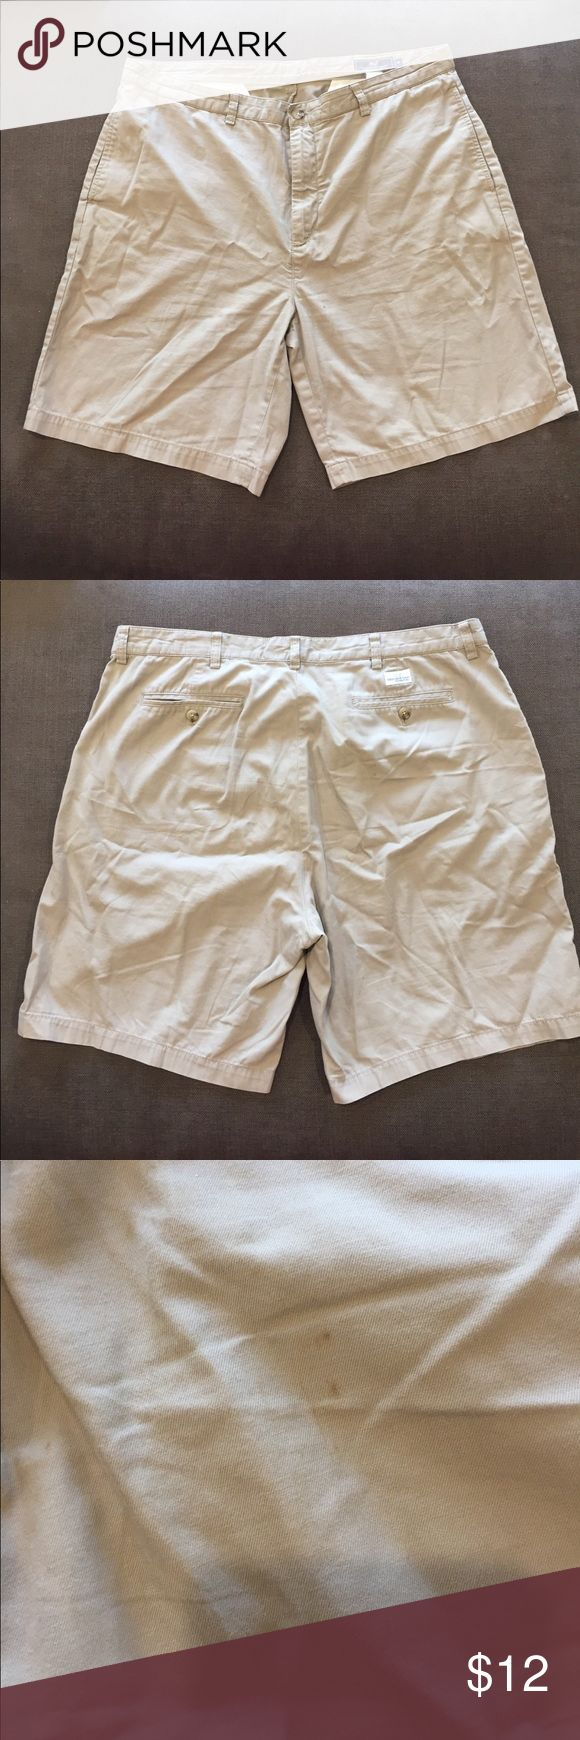 Vineyard vines men's khaki shorts Men's shorts with some wear and tear as pictured! Vineyard Vines Shorts Hybrids